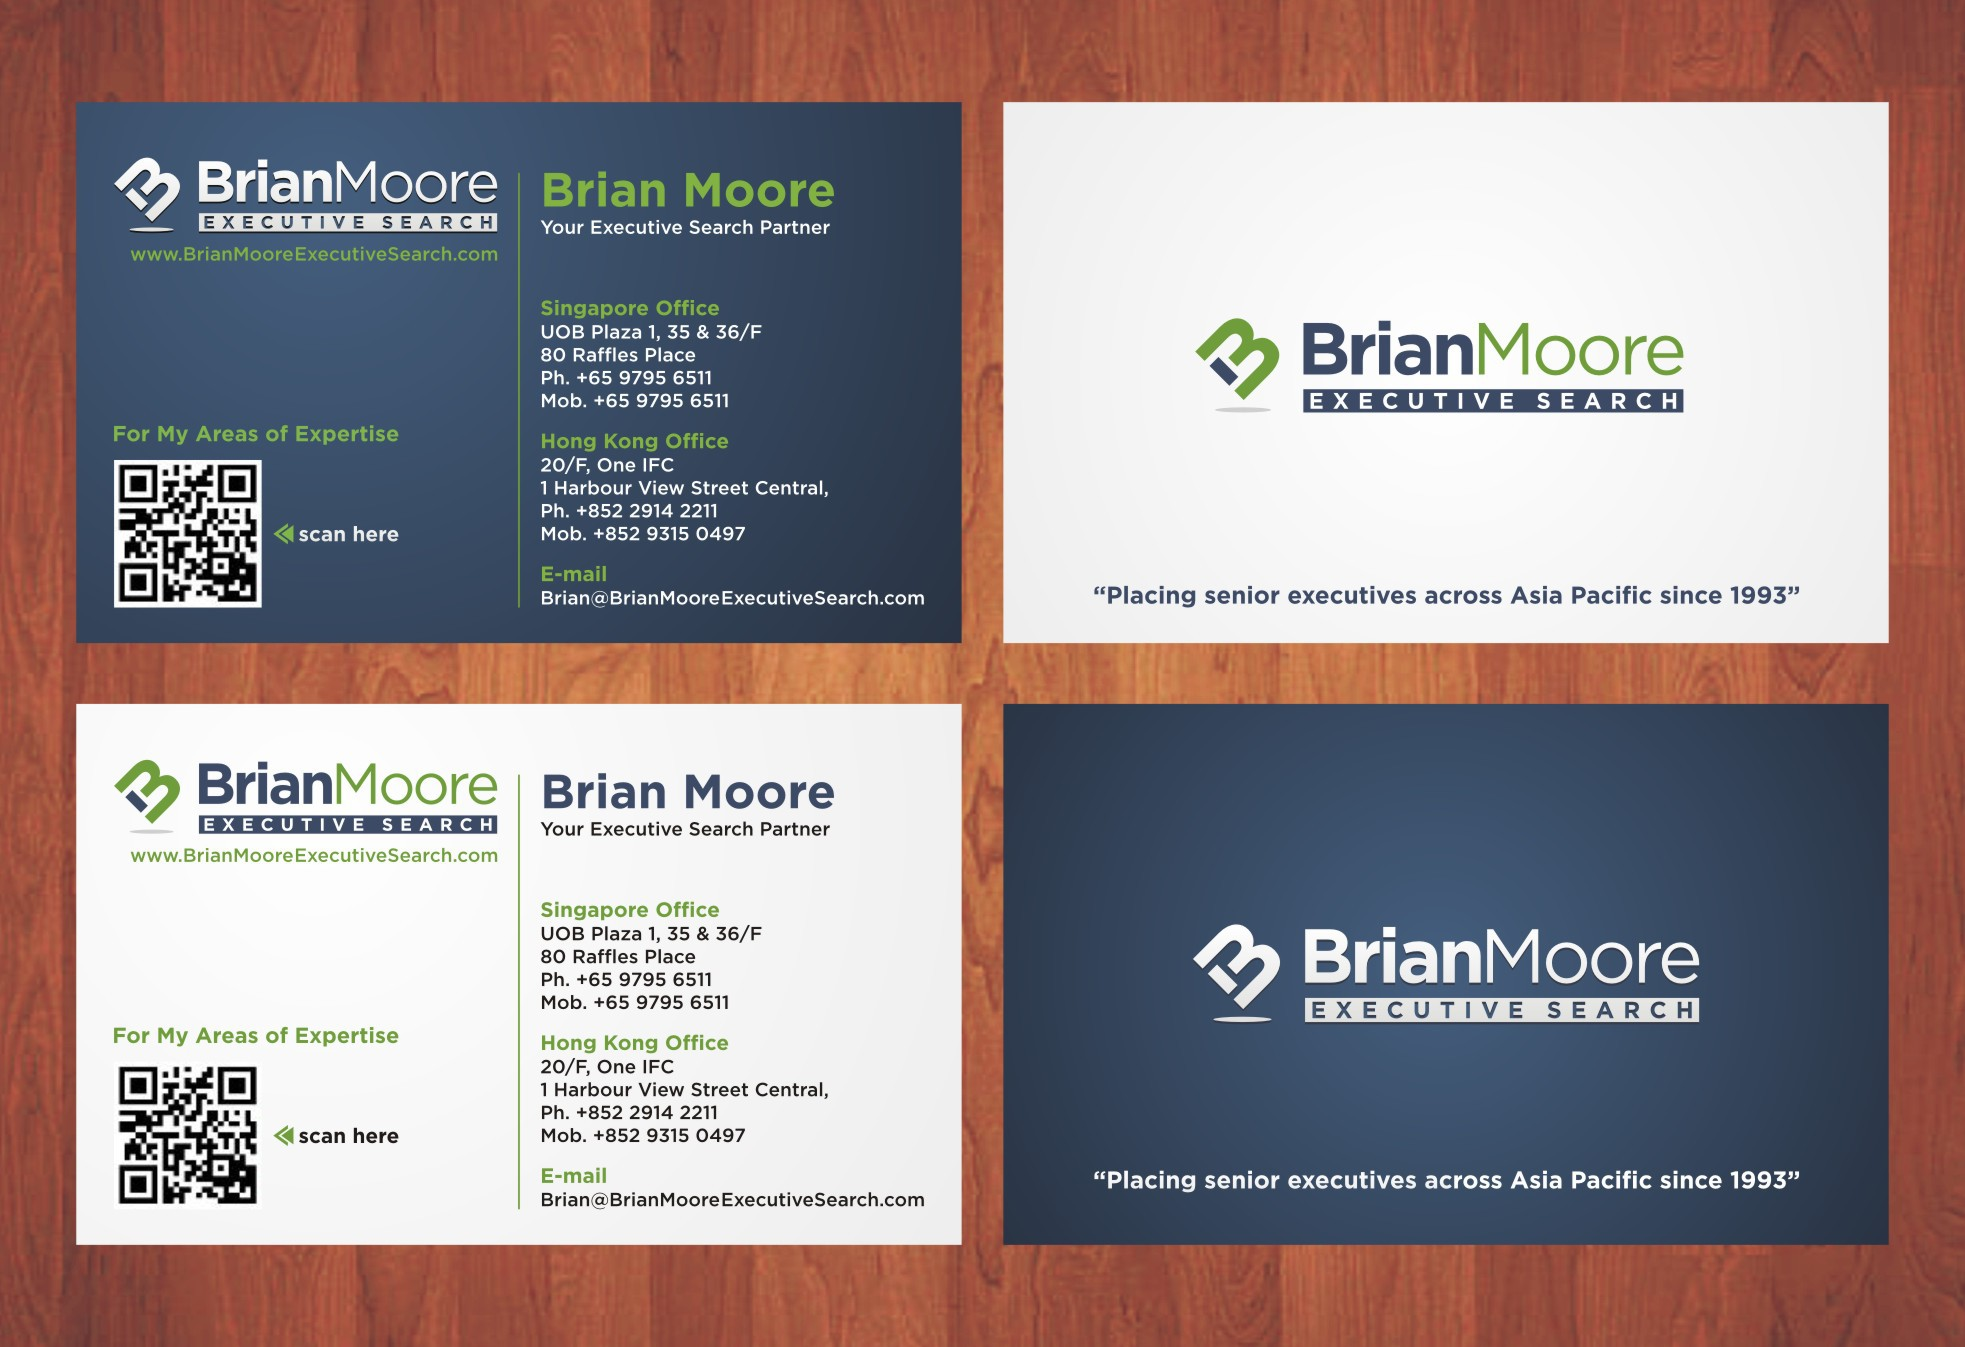 logo for Brian Moore Executive Search